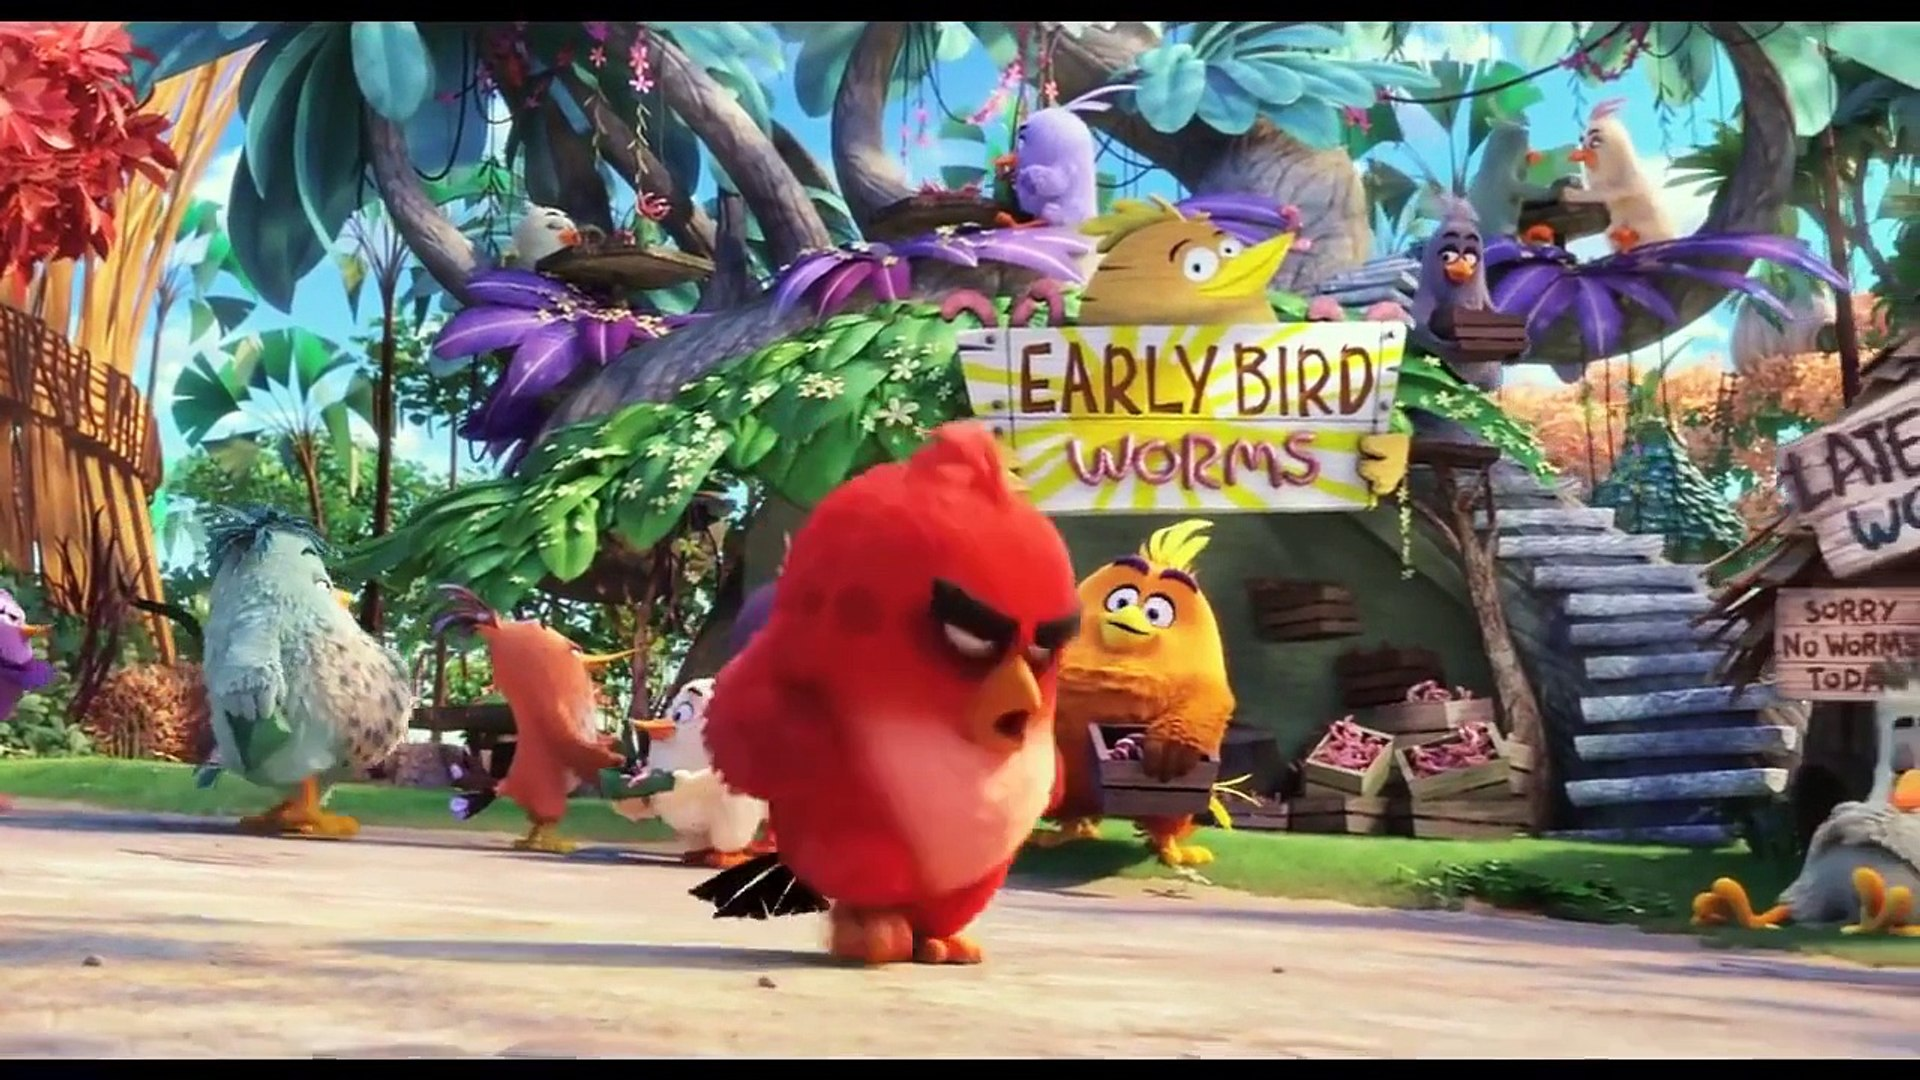 Angry Birds 2016 Official Teaser Trailer + Trailer Review : Beyond The Trailer